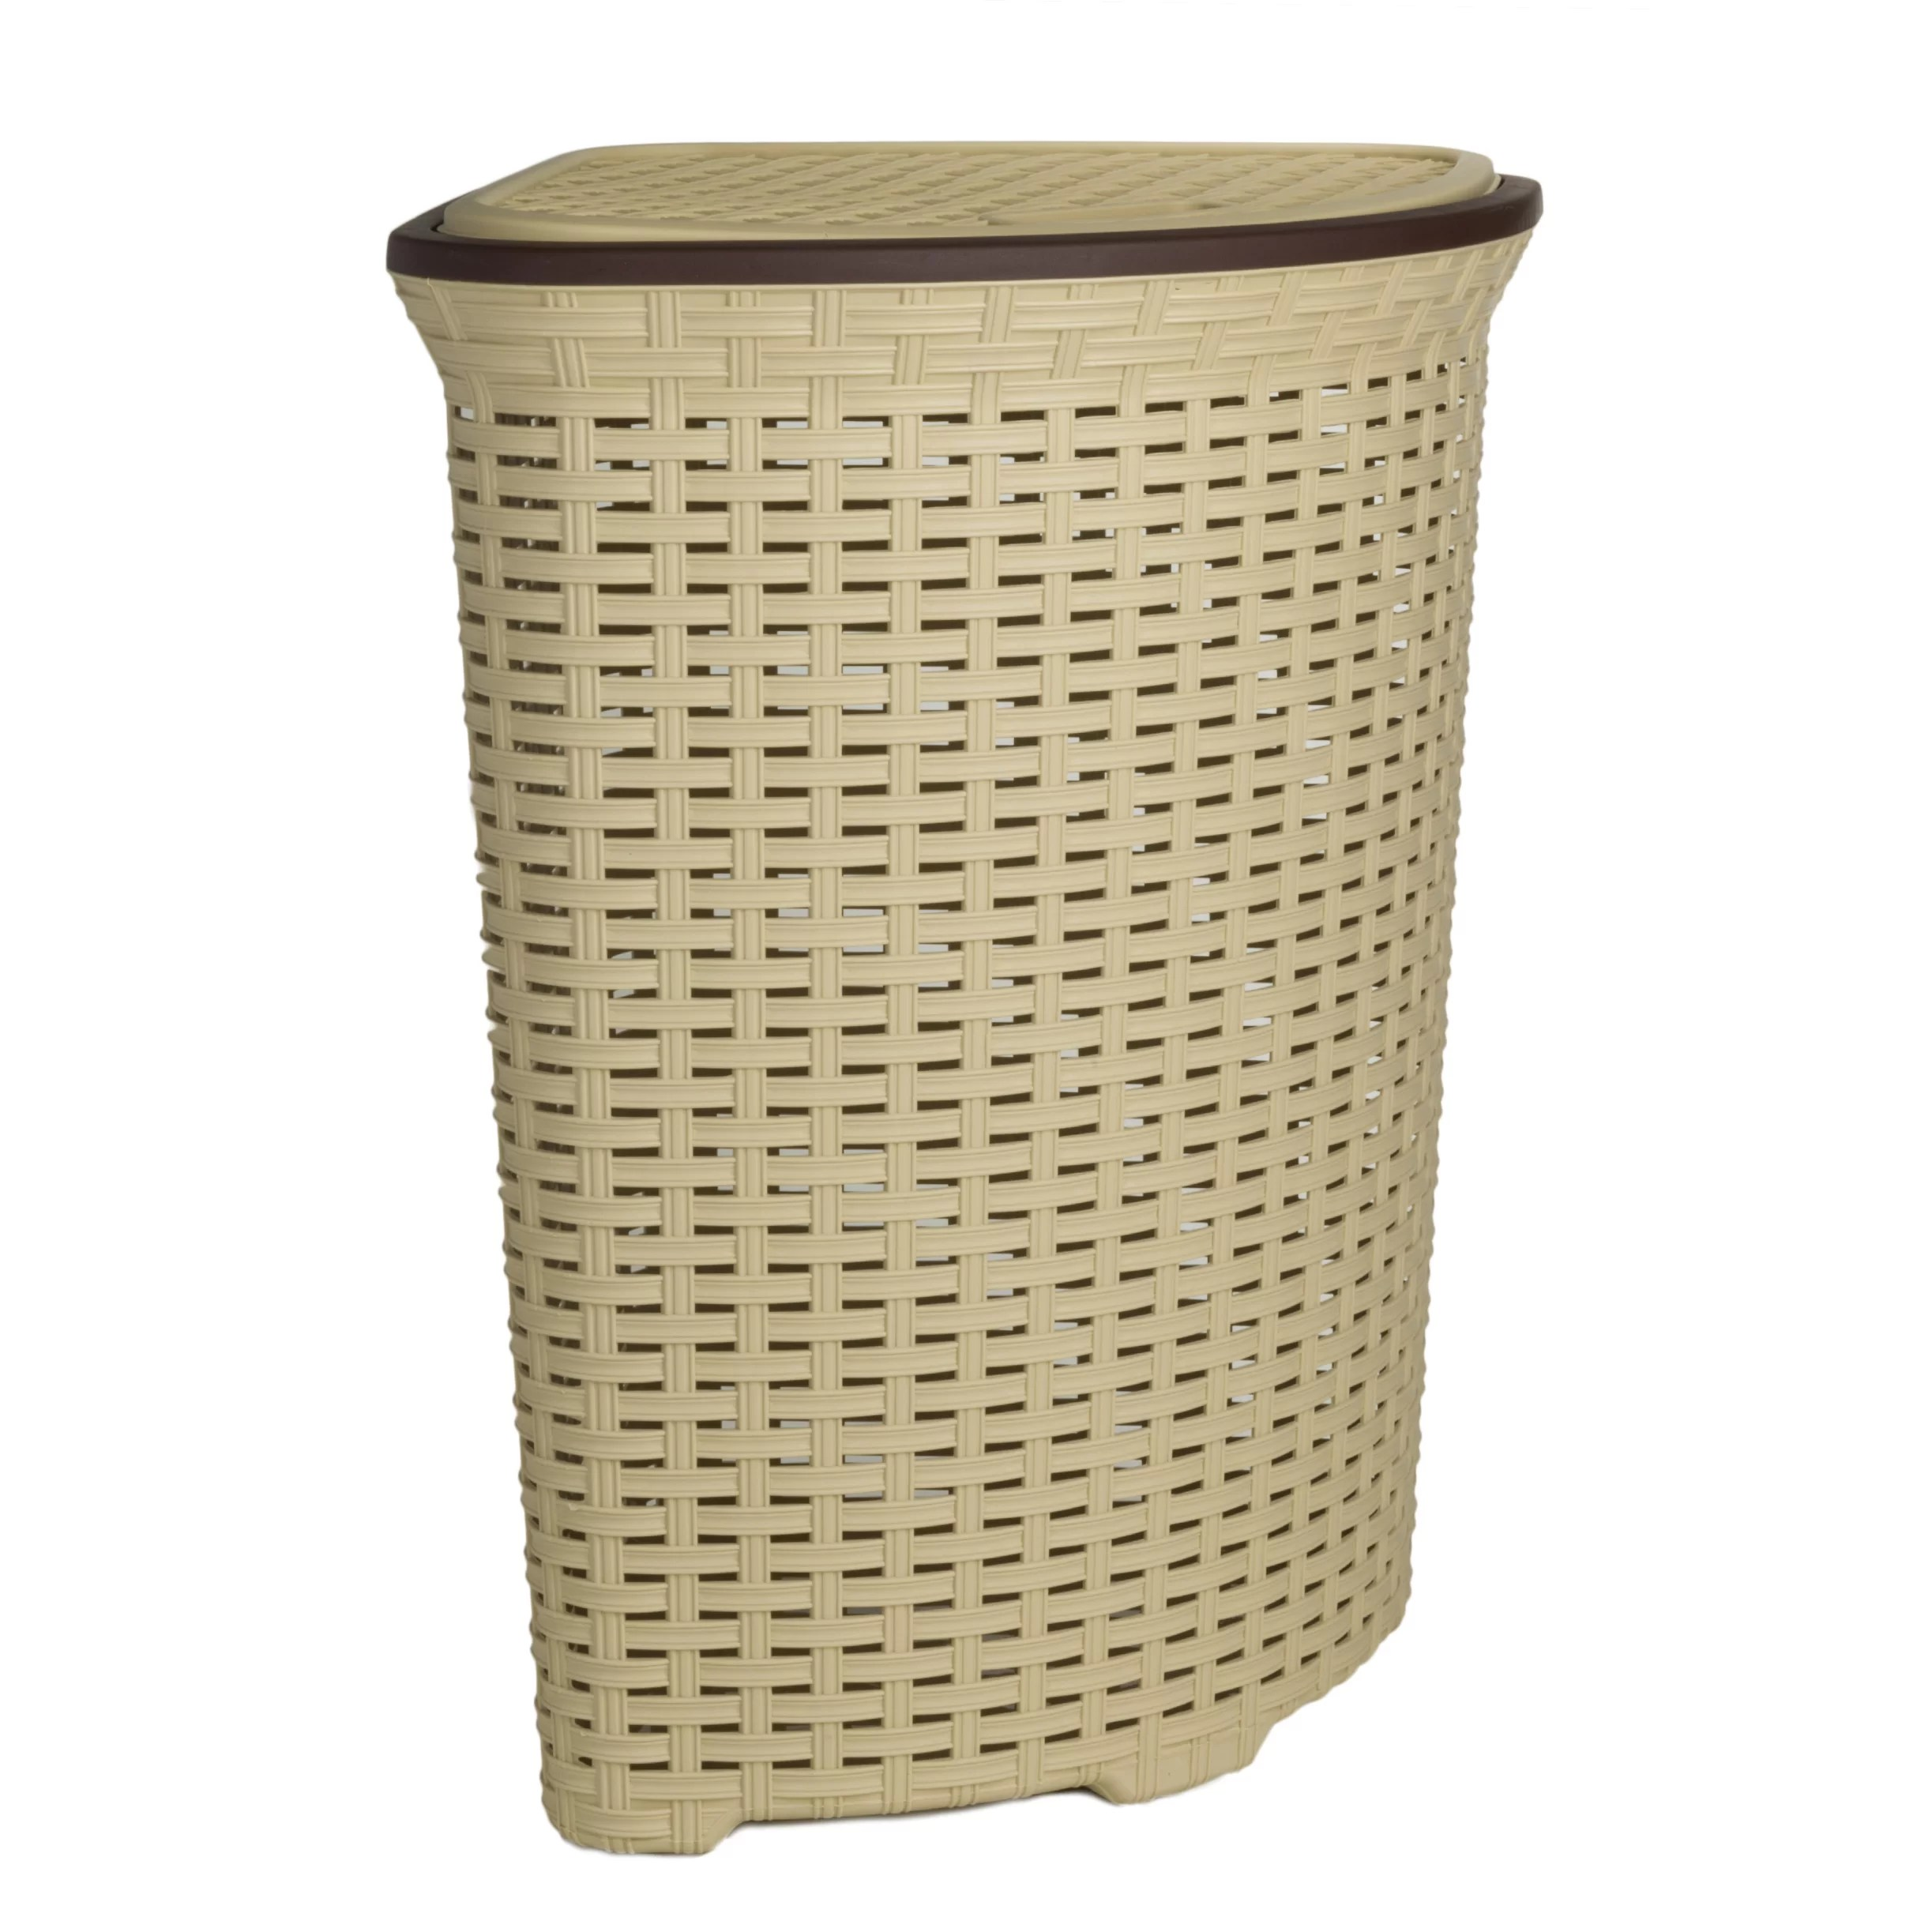 Wicker Laundry Baskets Superior Performance Superio Brand Wicker Laundry Hamper